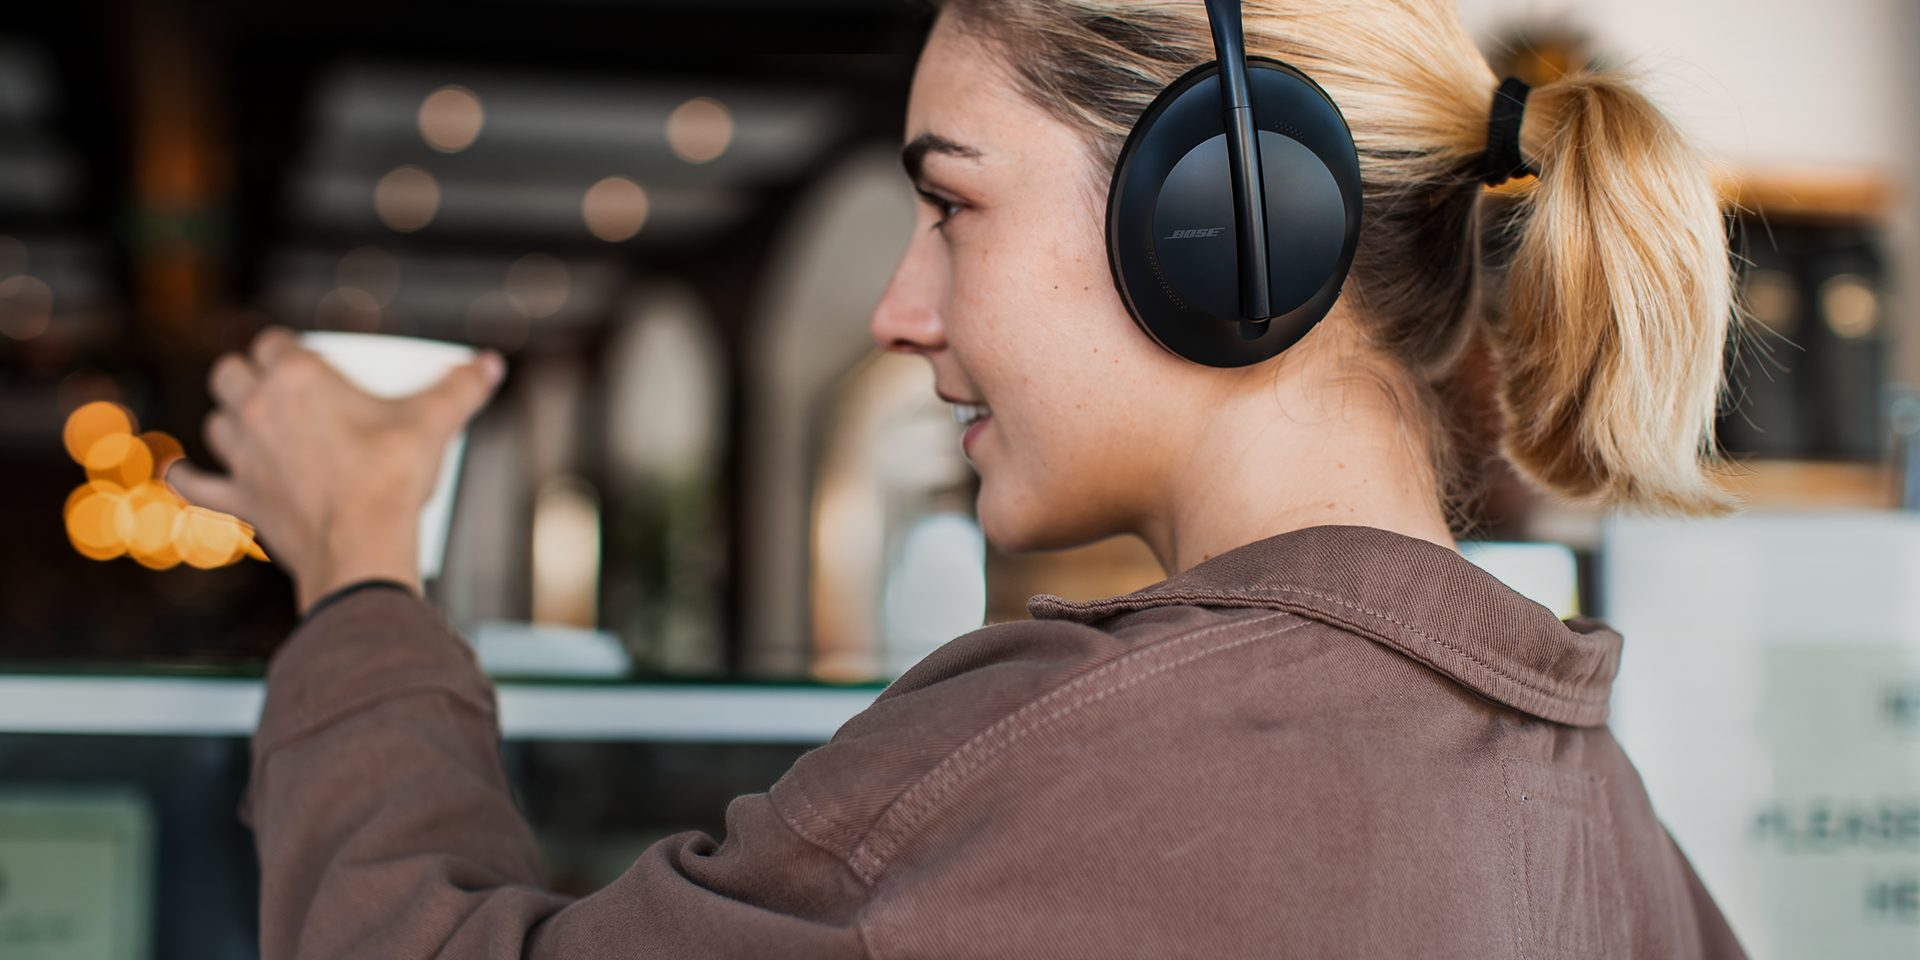 Best headphones for podcasts and audiobooks